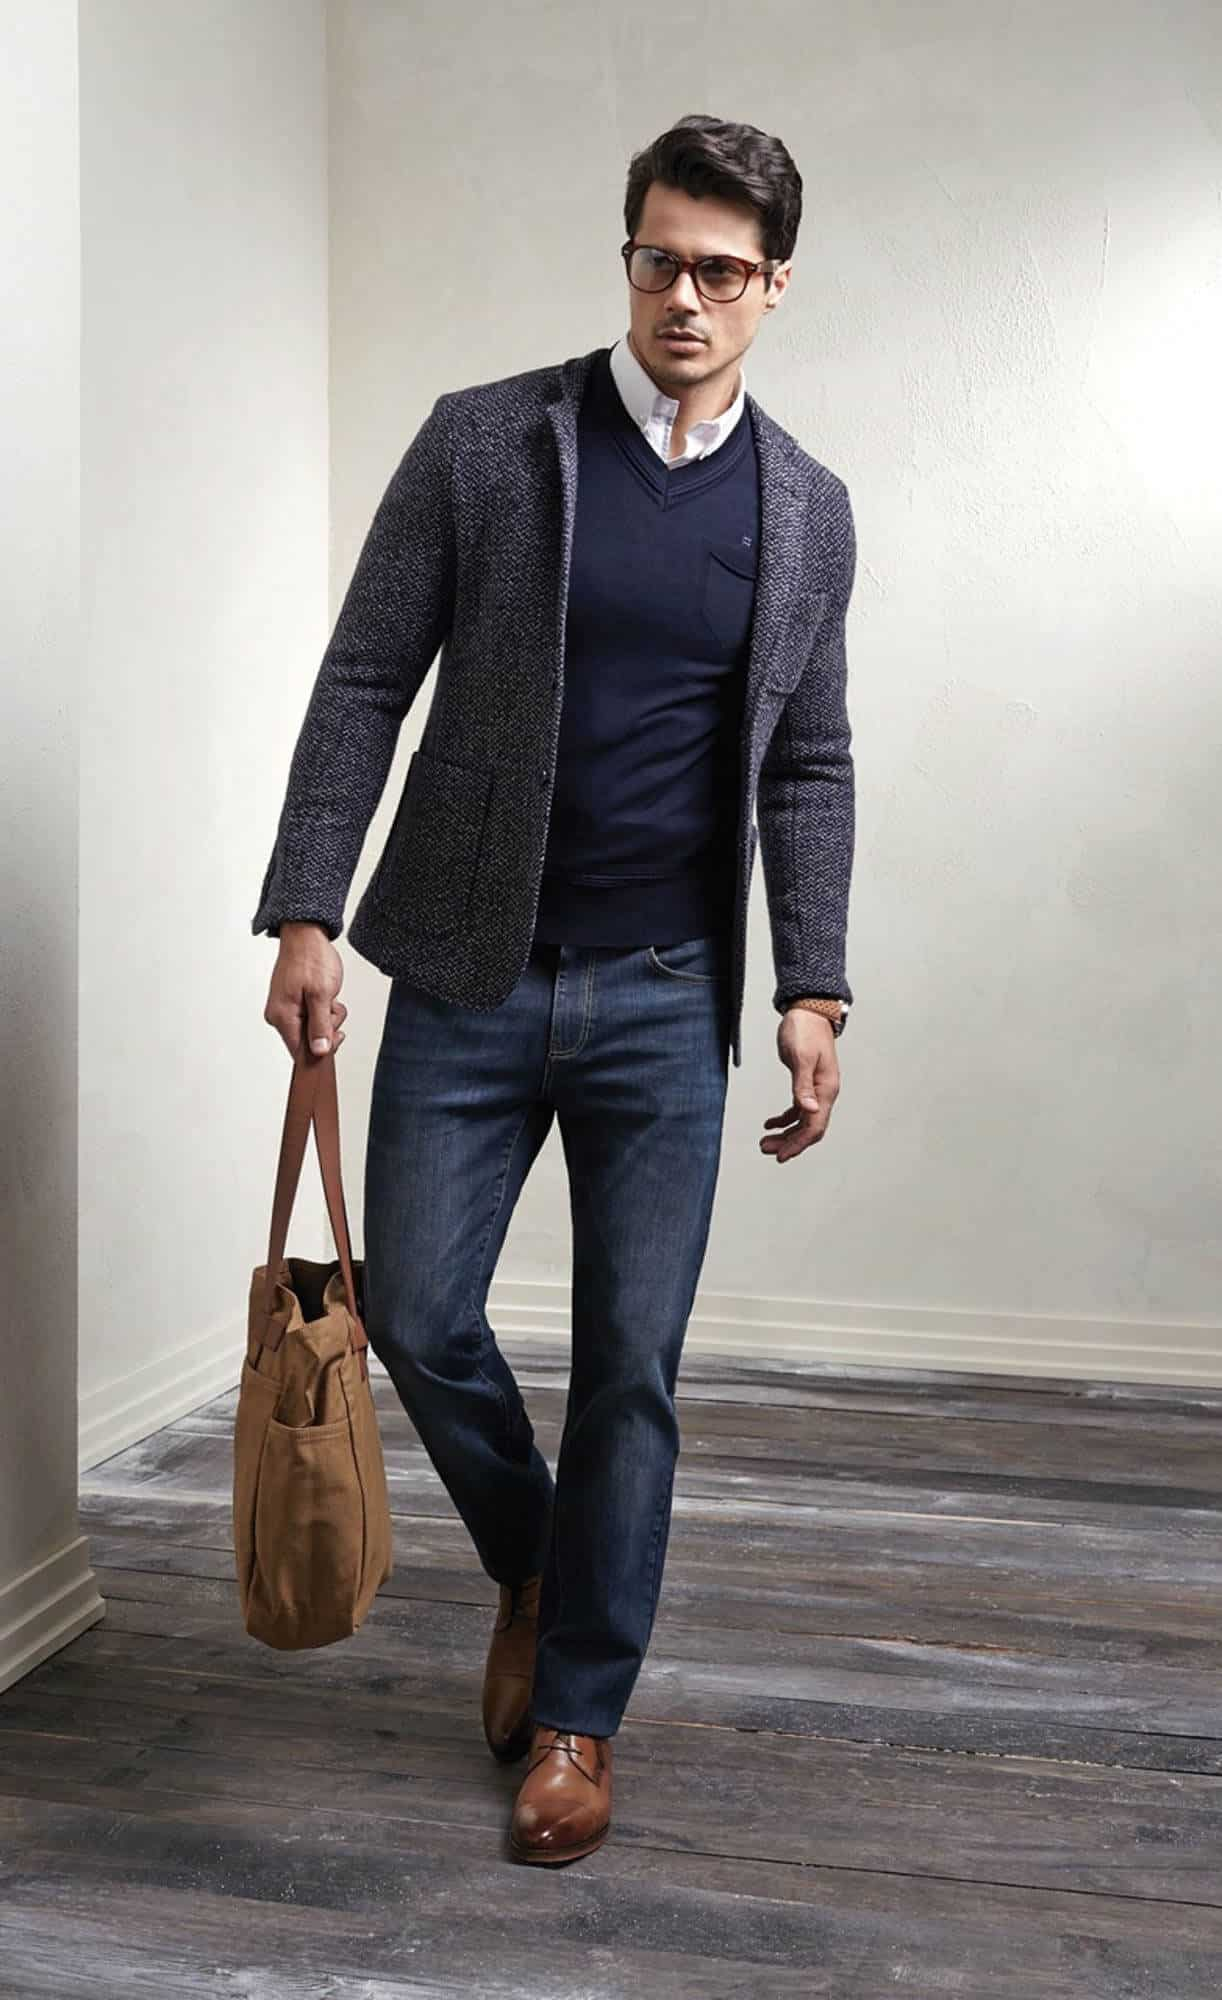 Business Casual Men 39 S Attire Dress Code Explained